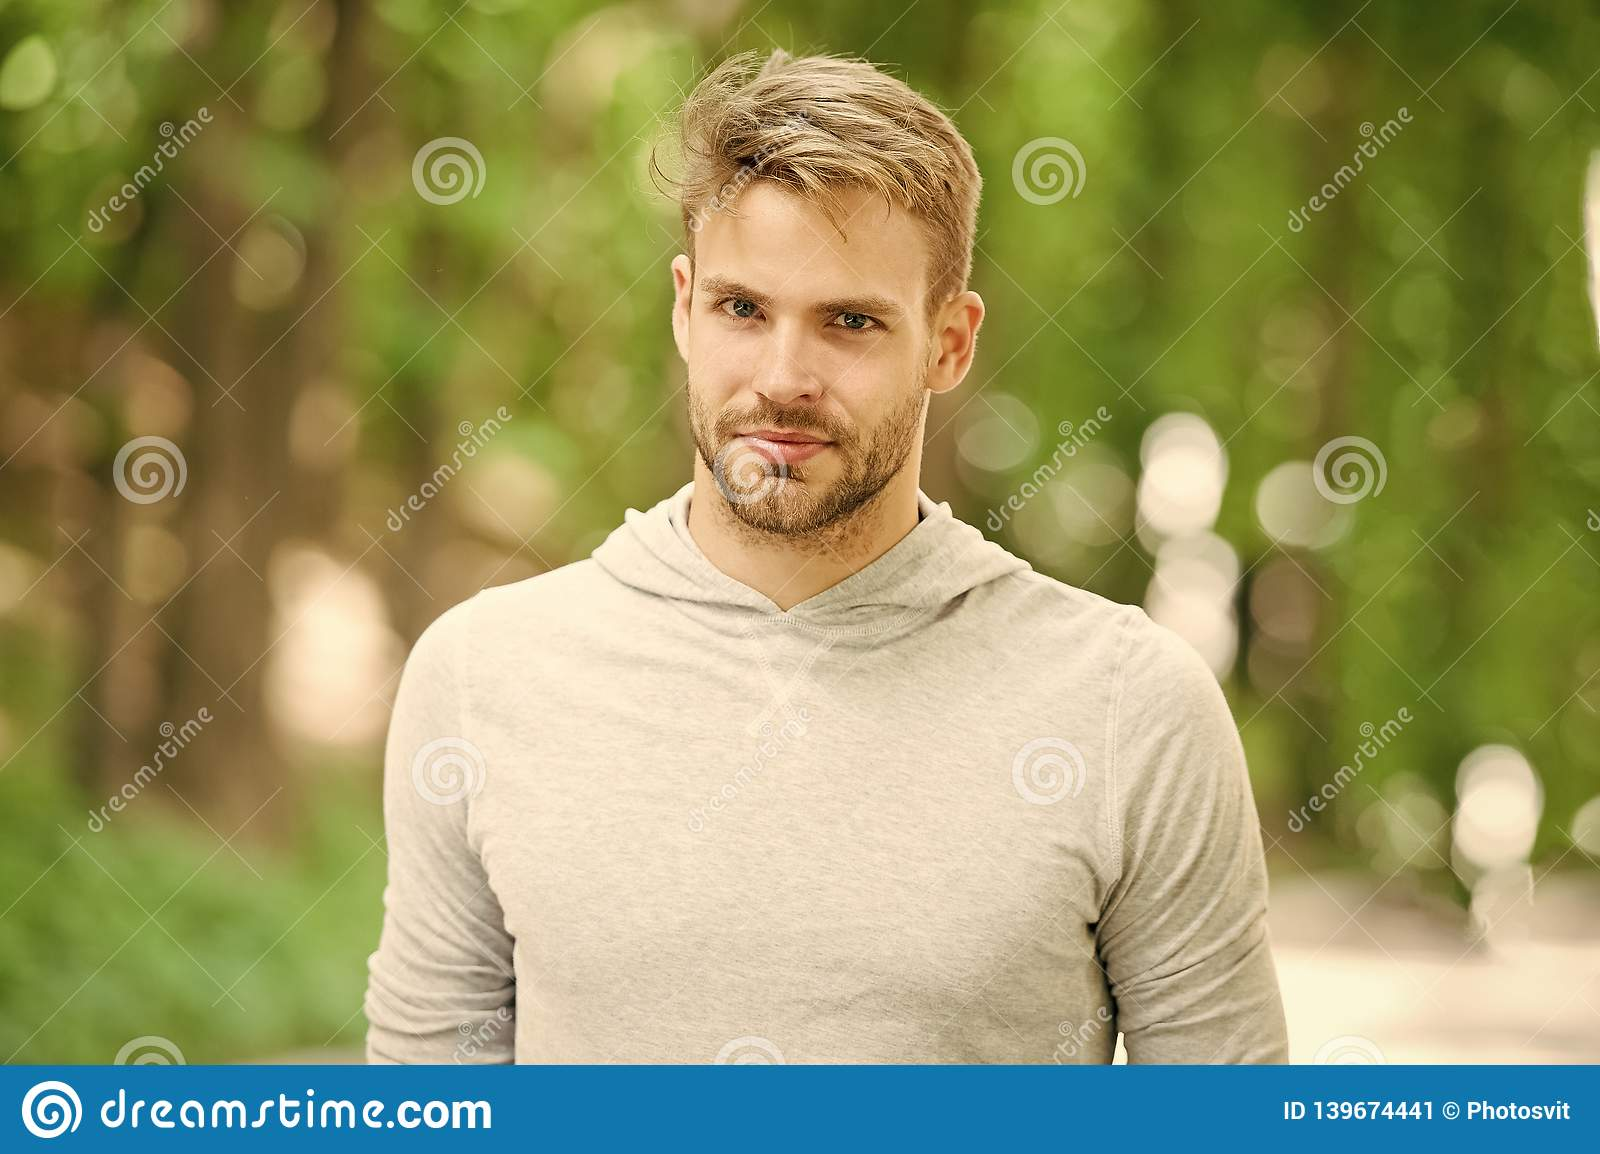 Man with bristle on calm face, nature background, defocused. Skin care concept. Man with beard or unshaven guy looks